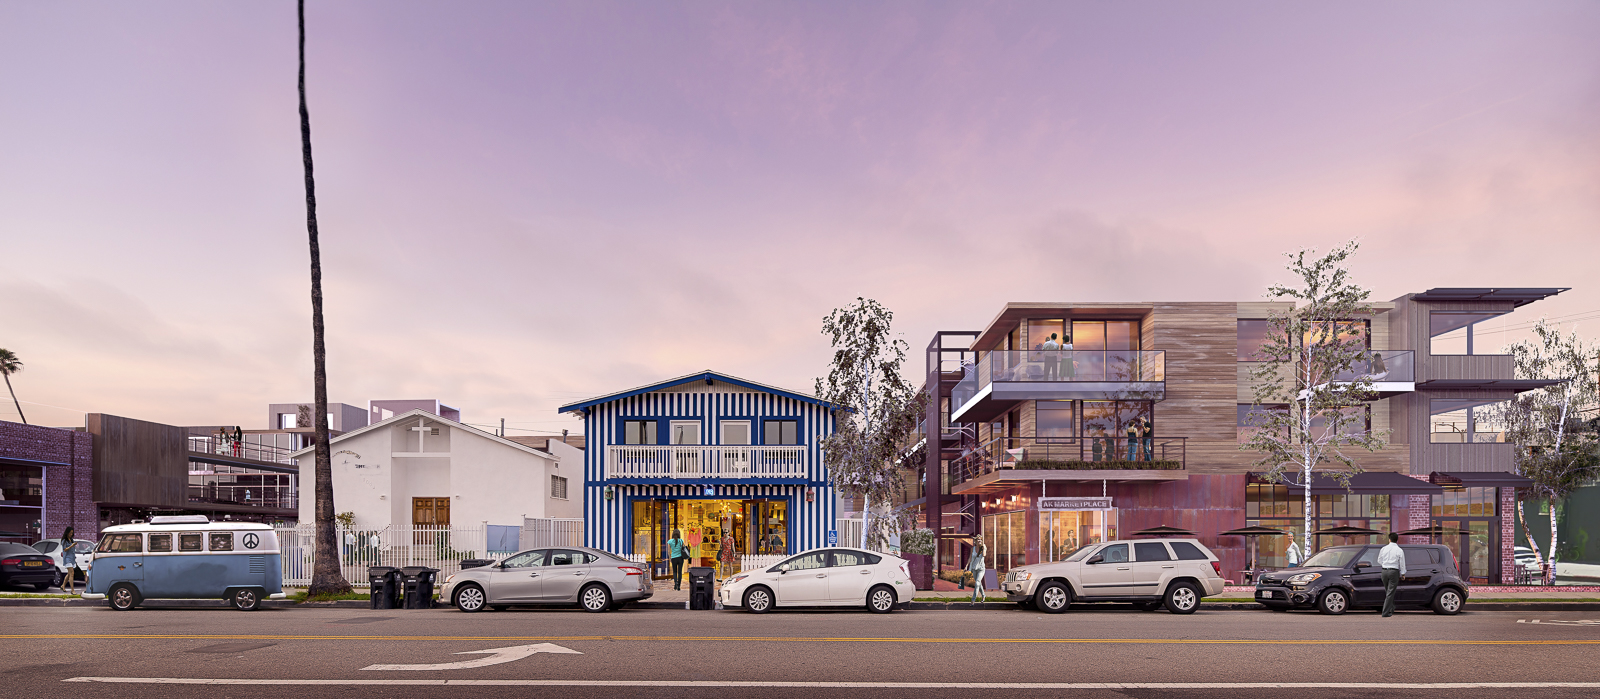 S.E.A.-Studio-Environmental-Architecture-David-Hertz-FAIA-Abbot-Kinney-Hotel-Venice-Place-adaptive-reuse-sustainable-regenerative-restorative-design-pedestrian-walkable-urbanism-local-community-context-modern-destination-inspired-resort-mixed-use-LA-8.jpg